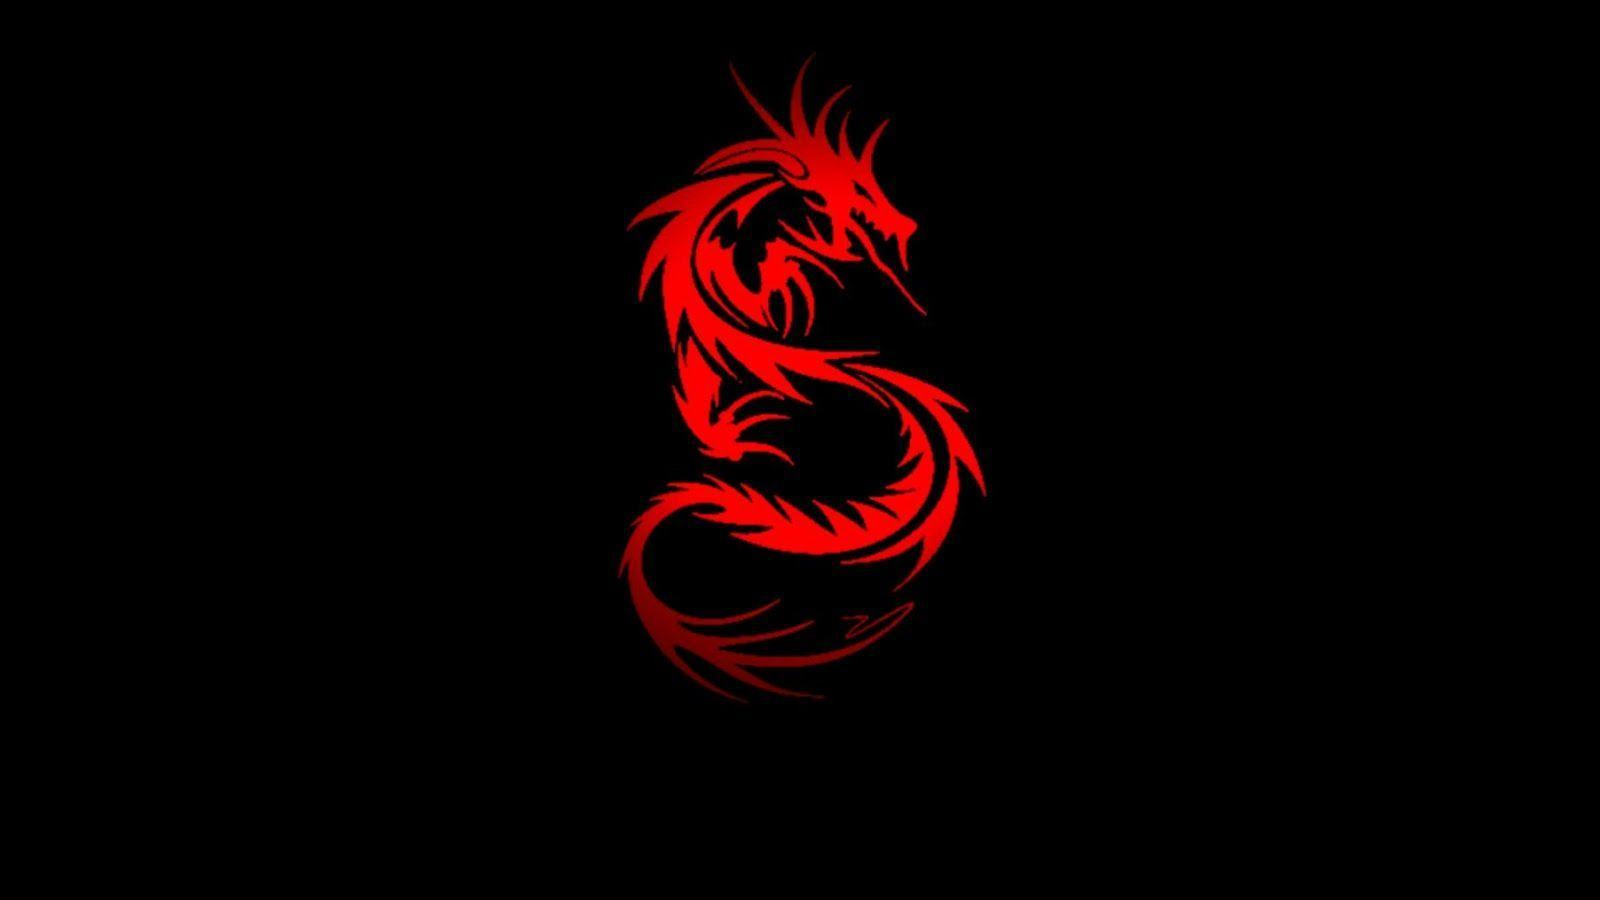 Red Dragon HD Wallpapers